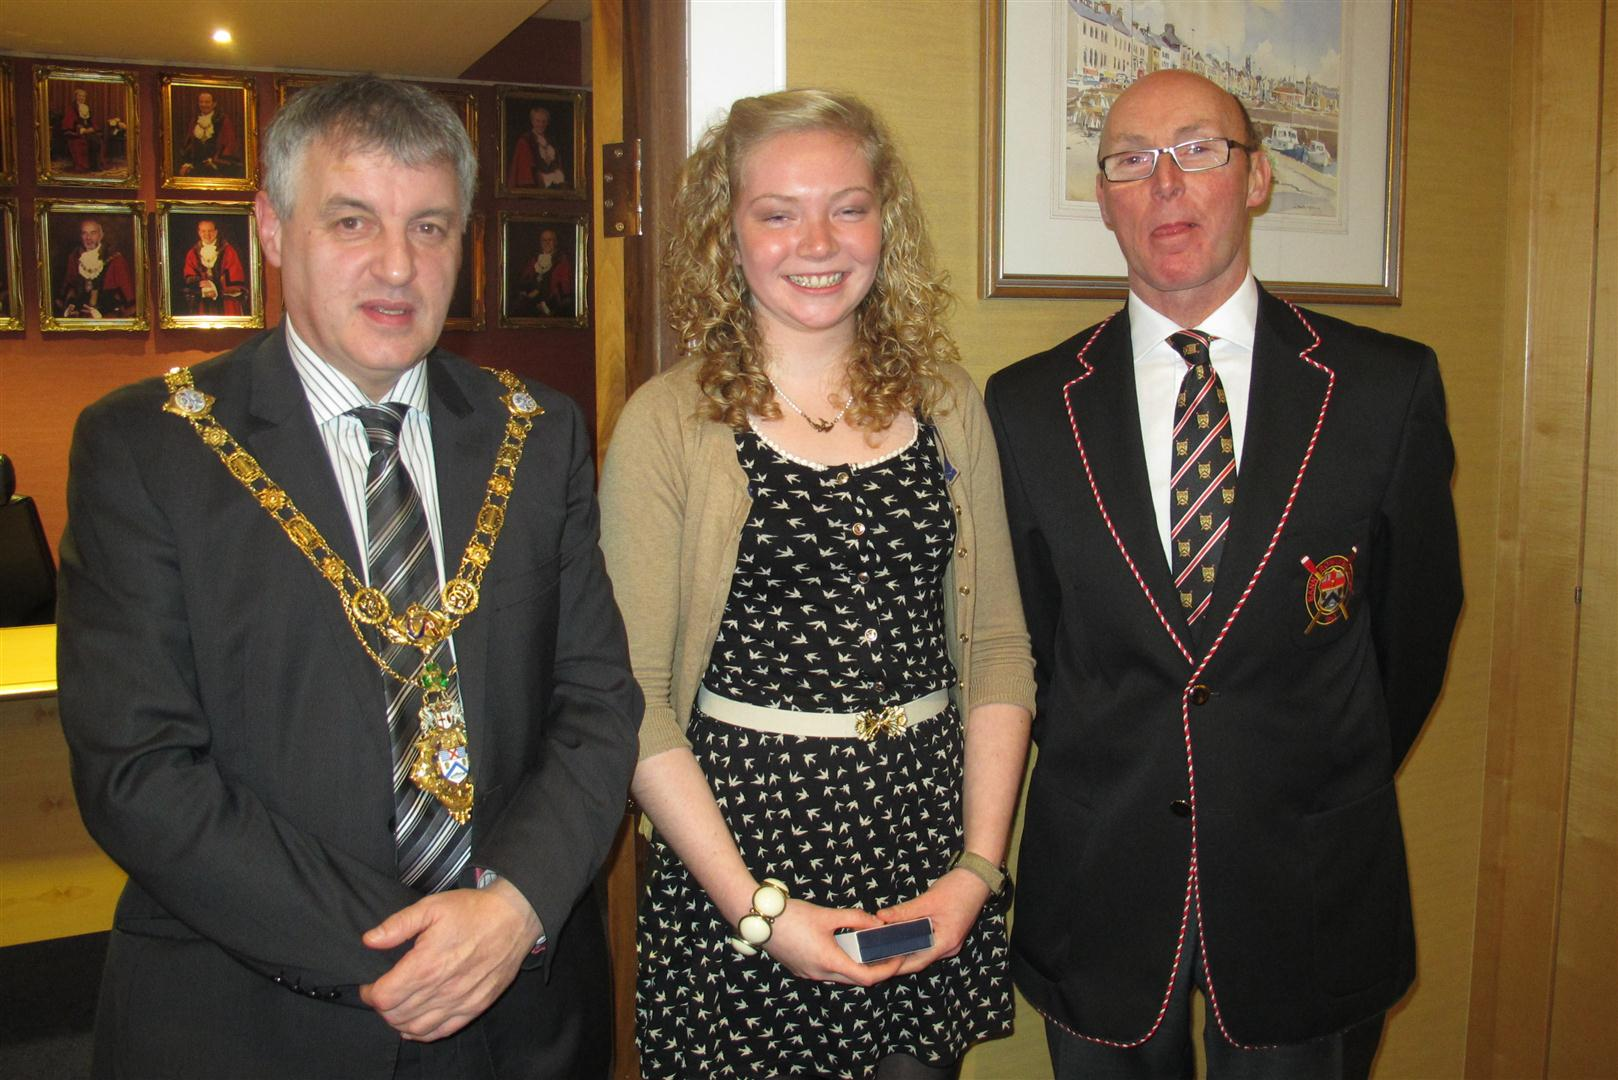 The Mayor, Club Captain and Sarah